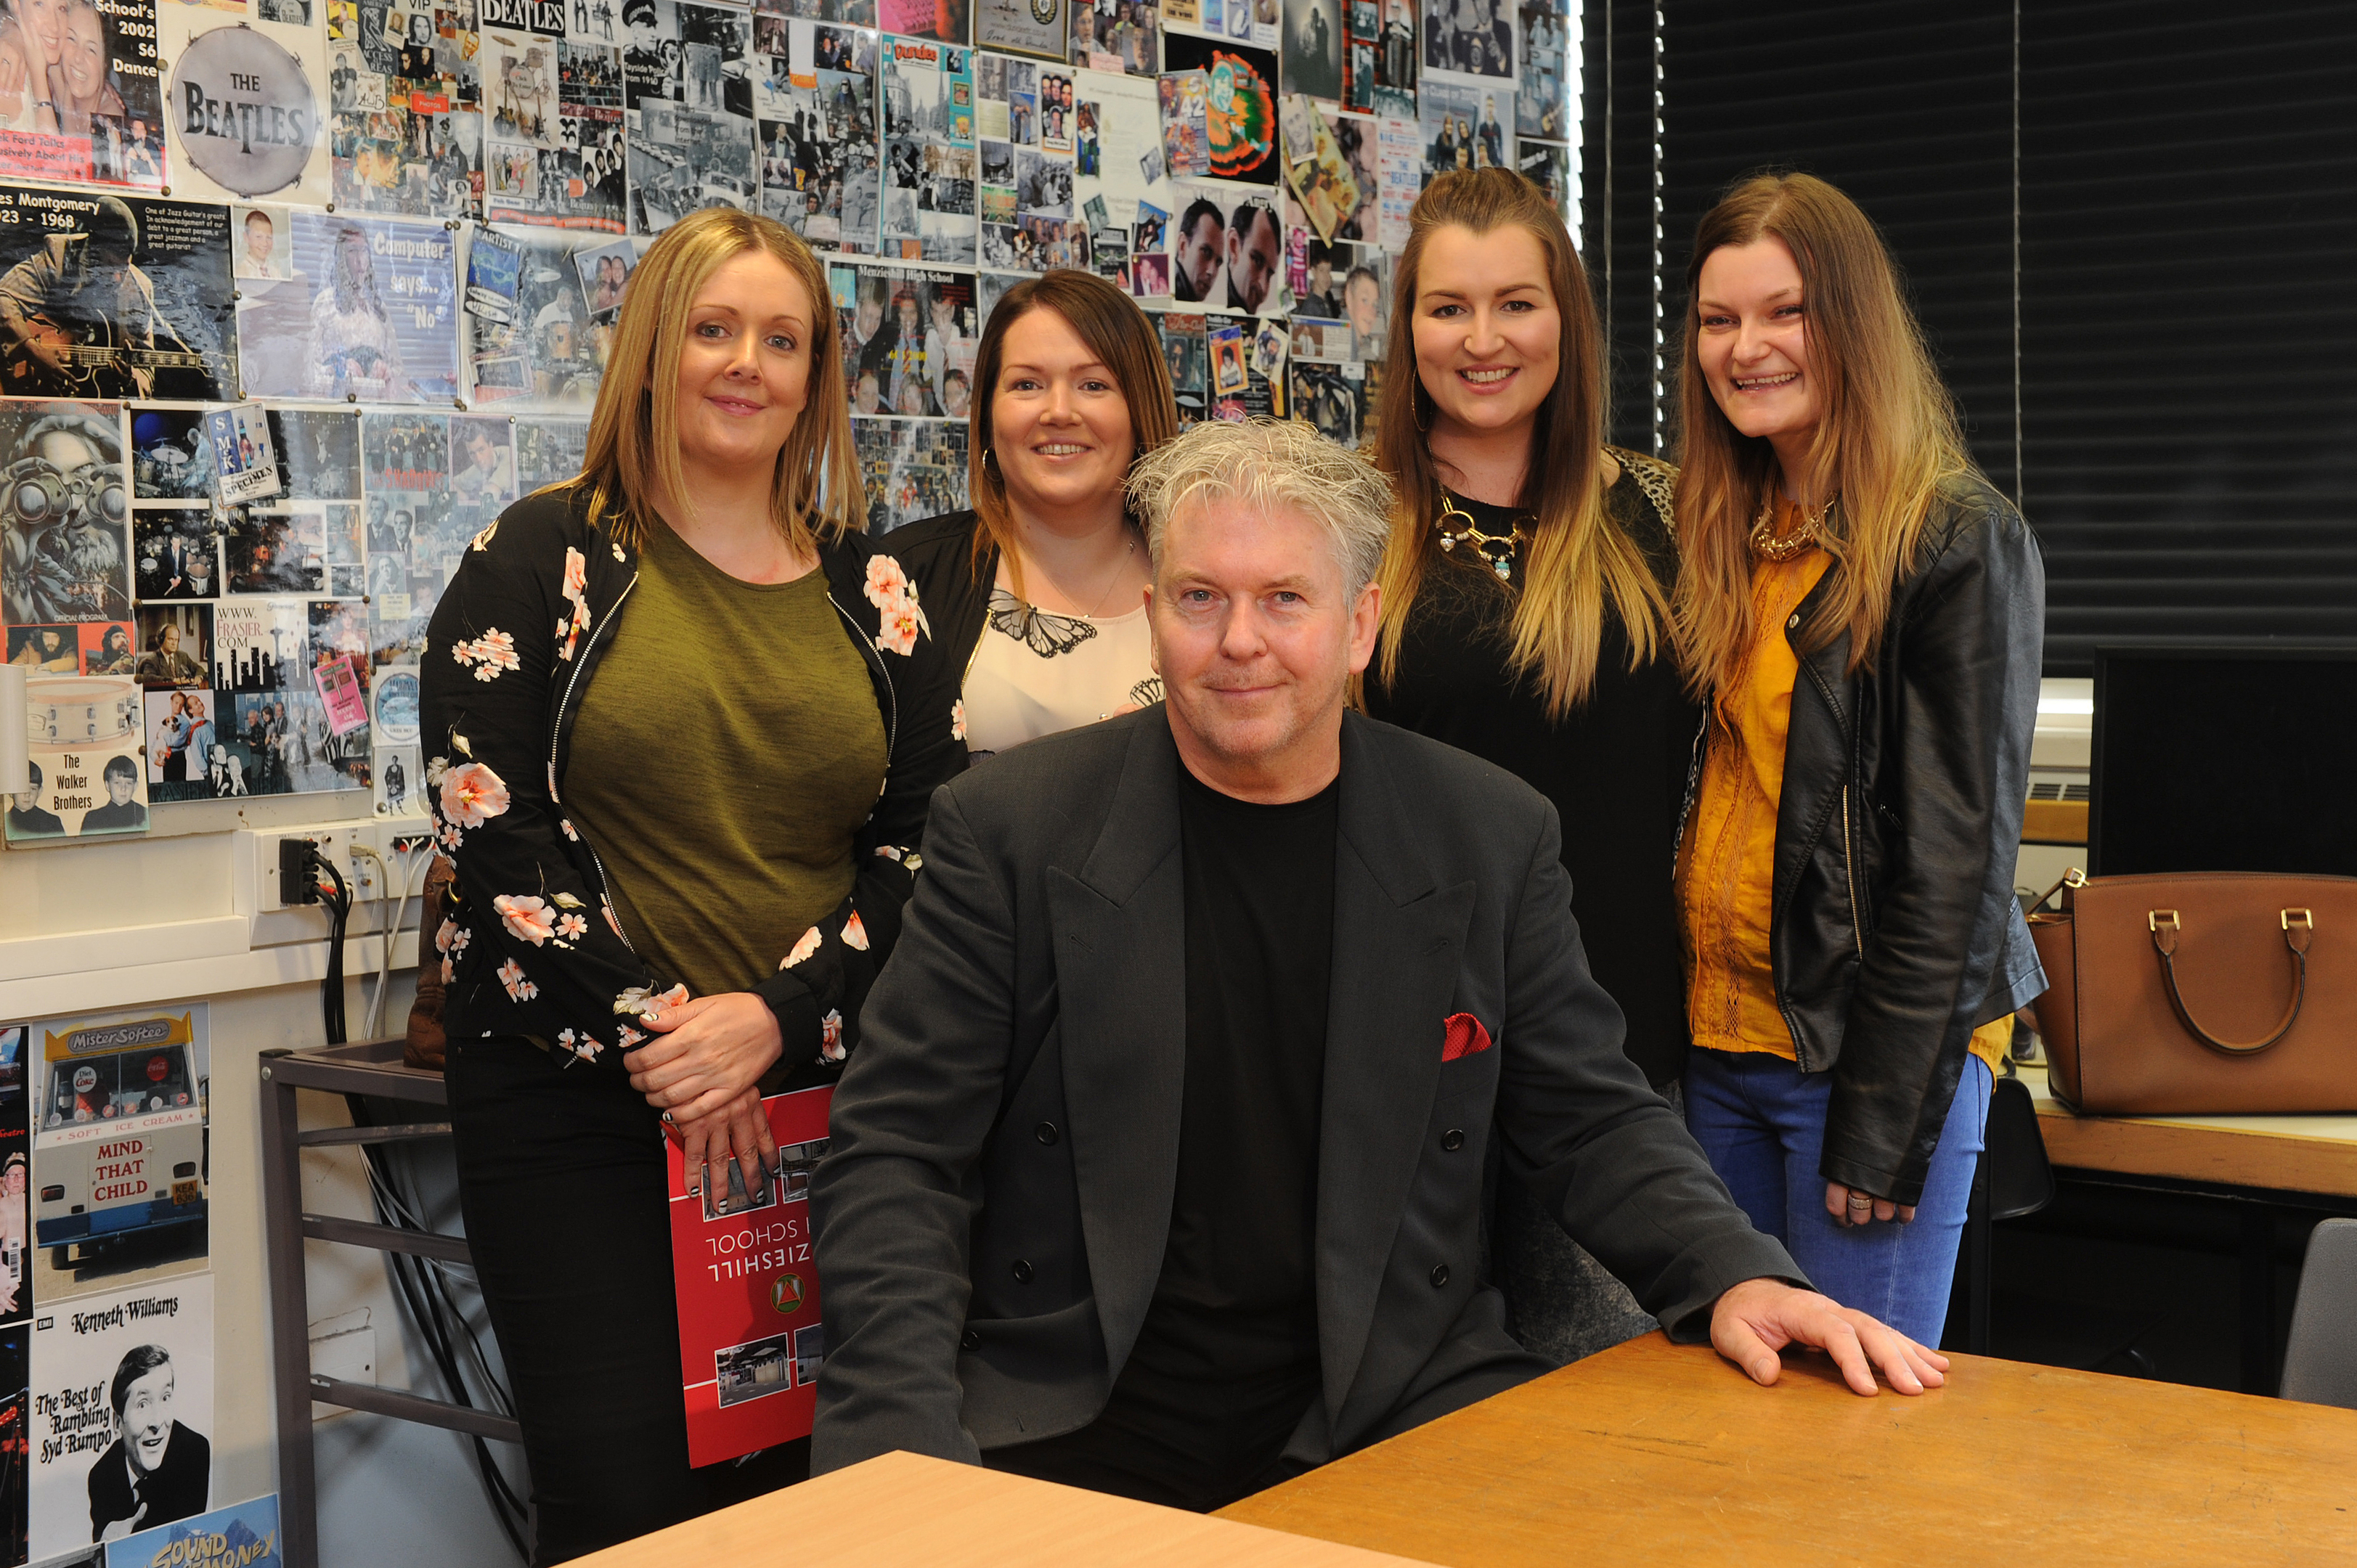 Greg McCaffrey with former pupils (from left) Vicki Lindsay, Suzanne Lindsay, Claire Dunbar and Victoria Vigrow.